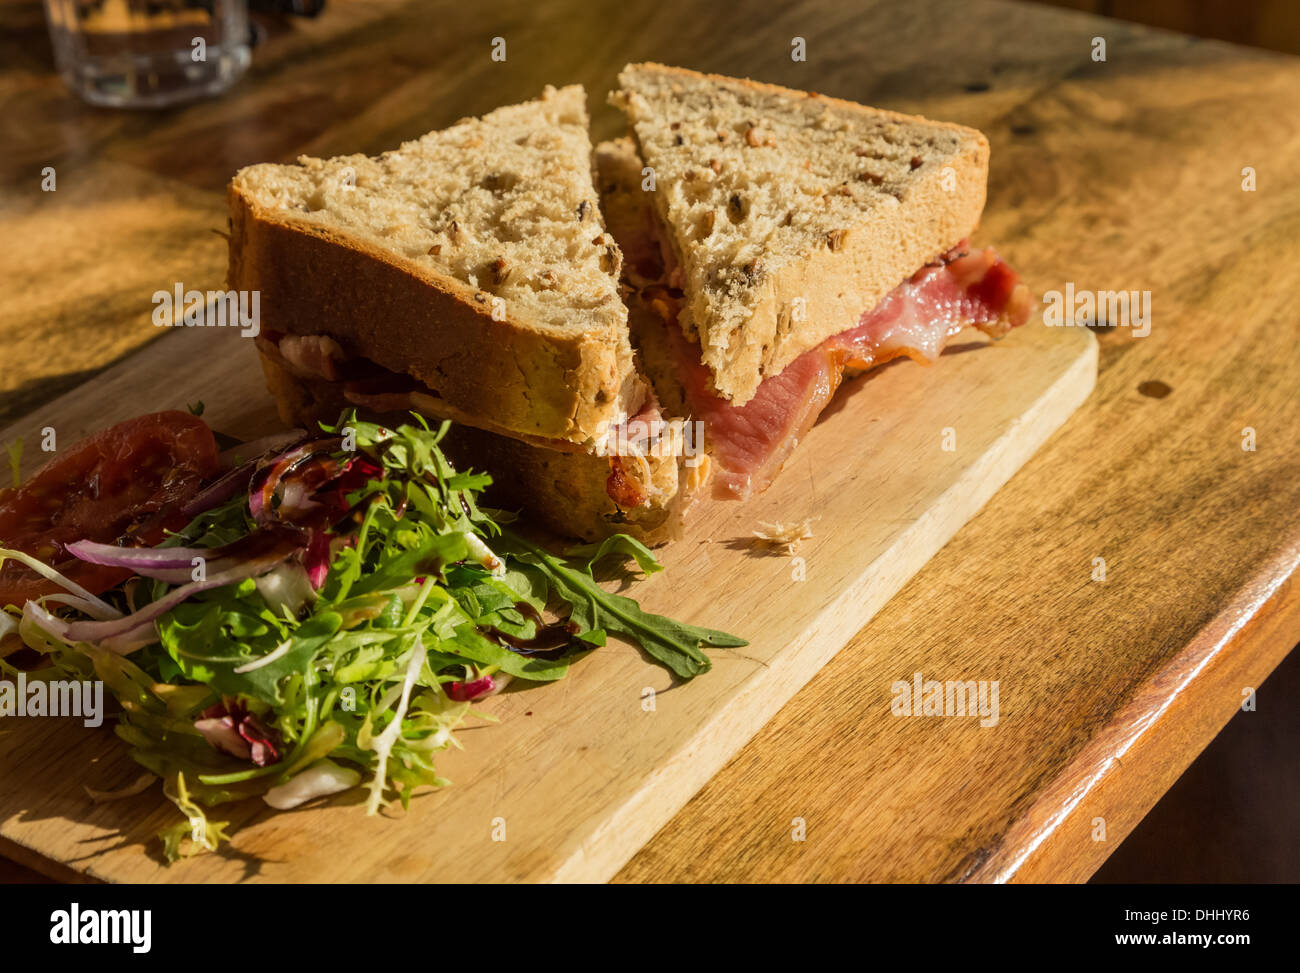 Bacon sandwich on thick wholemeal granary bread - Stock Image